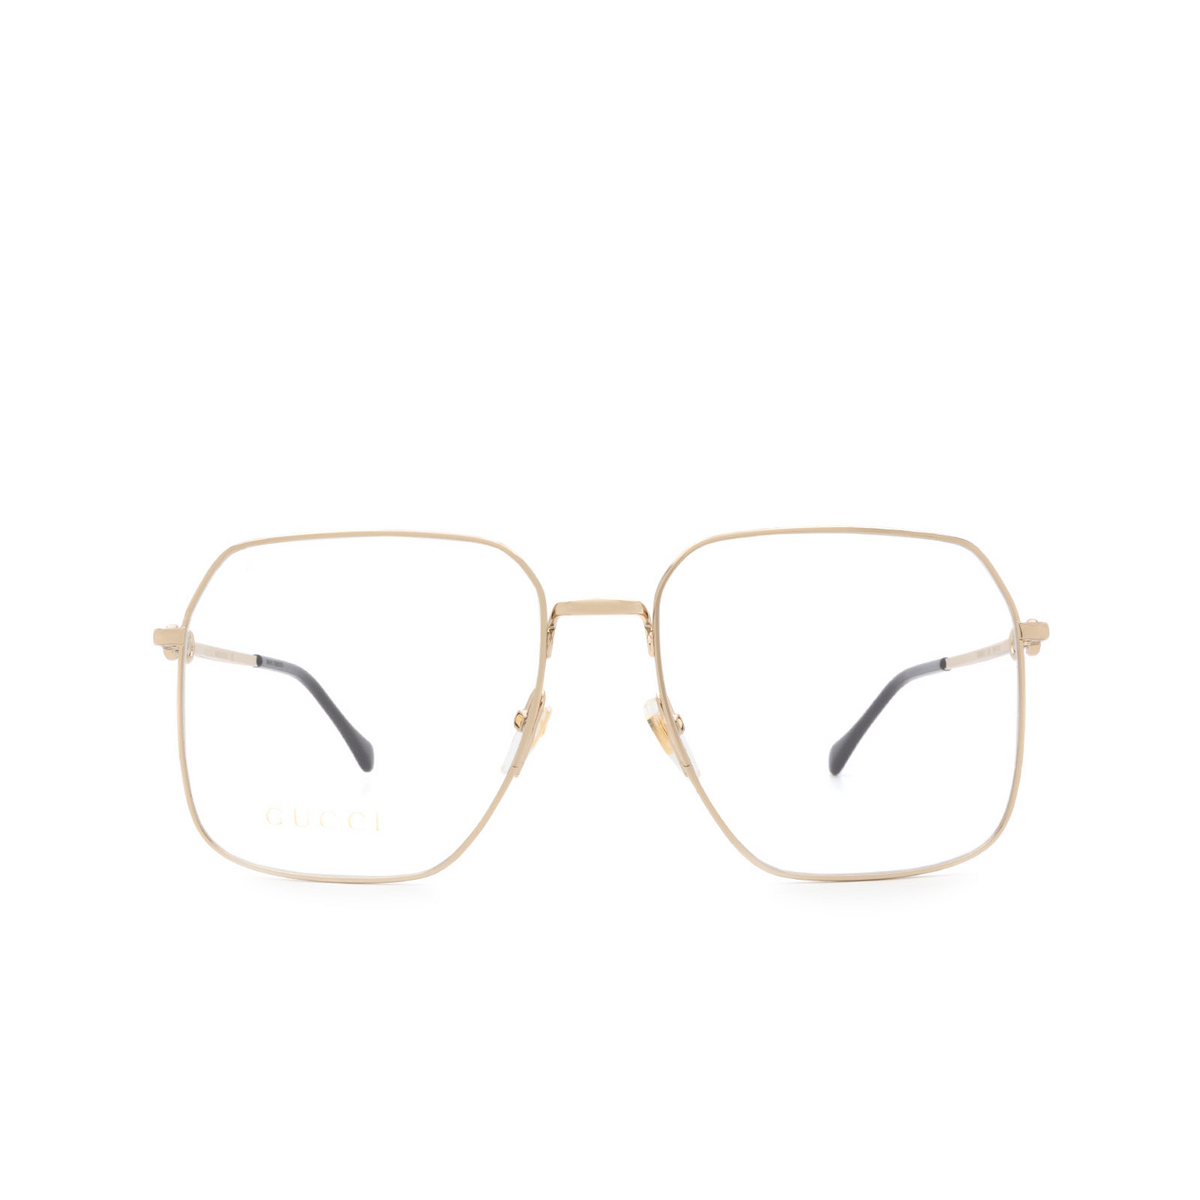 Gucci® Square Eyeglasses: GG0952O color Gold 002 - front view.